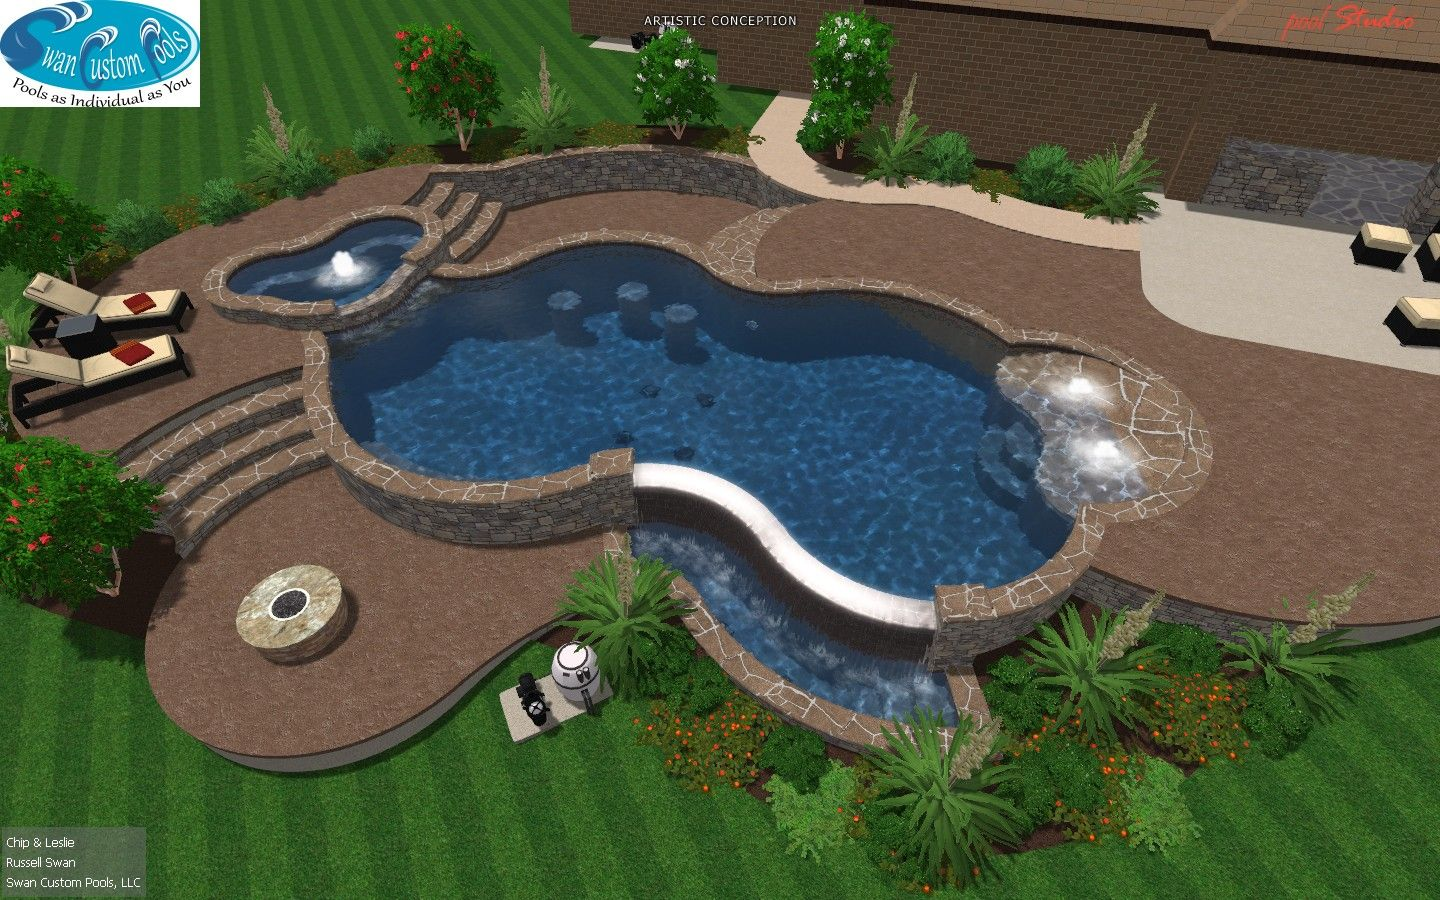 Infinity edge swimming pool w bbq swim up bar and spa for Pool design with swim up bar